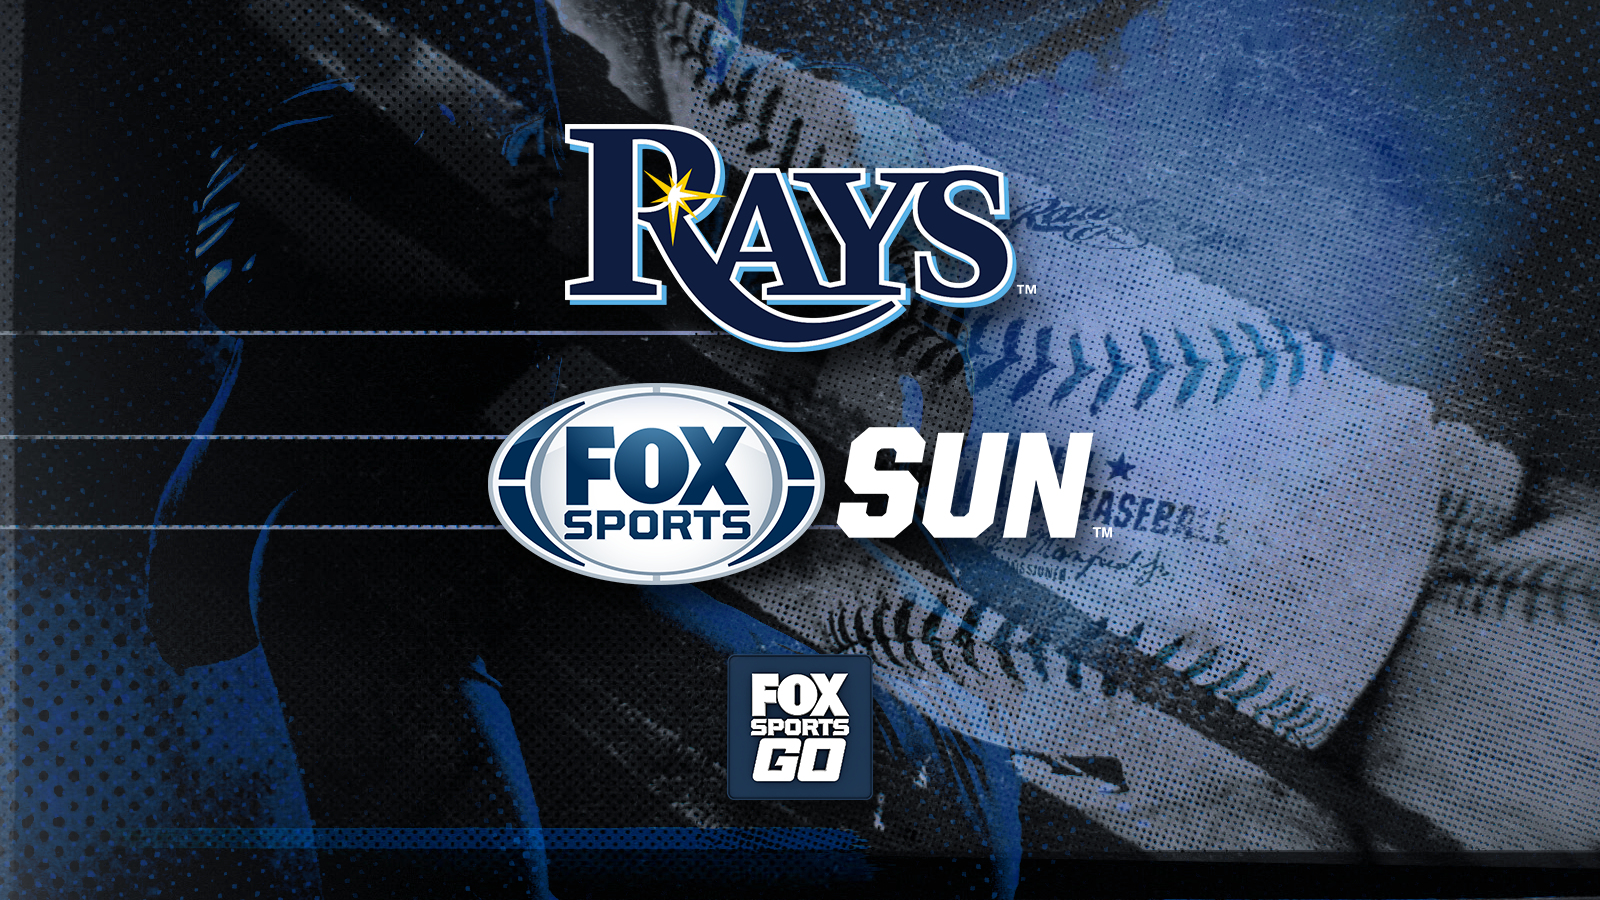 Fox Sports Sun Announces Tampa Bay Rays Best Of 2017 Replays